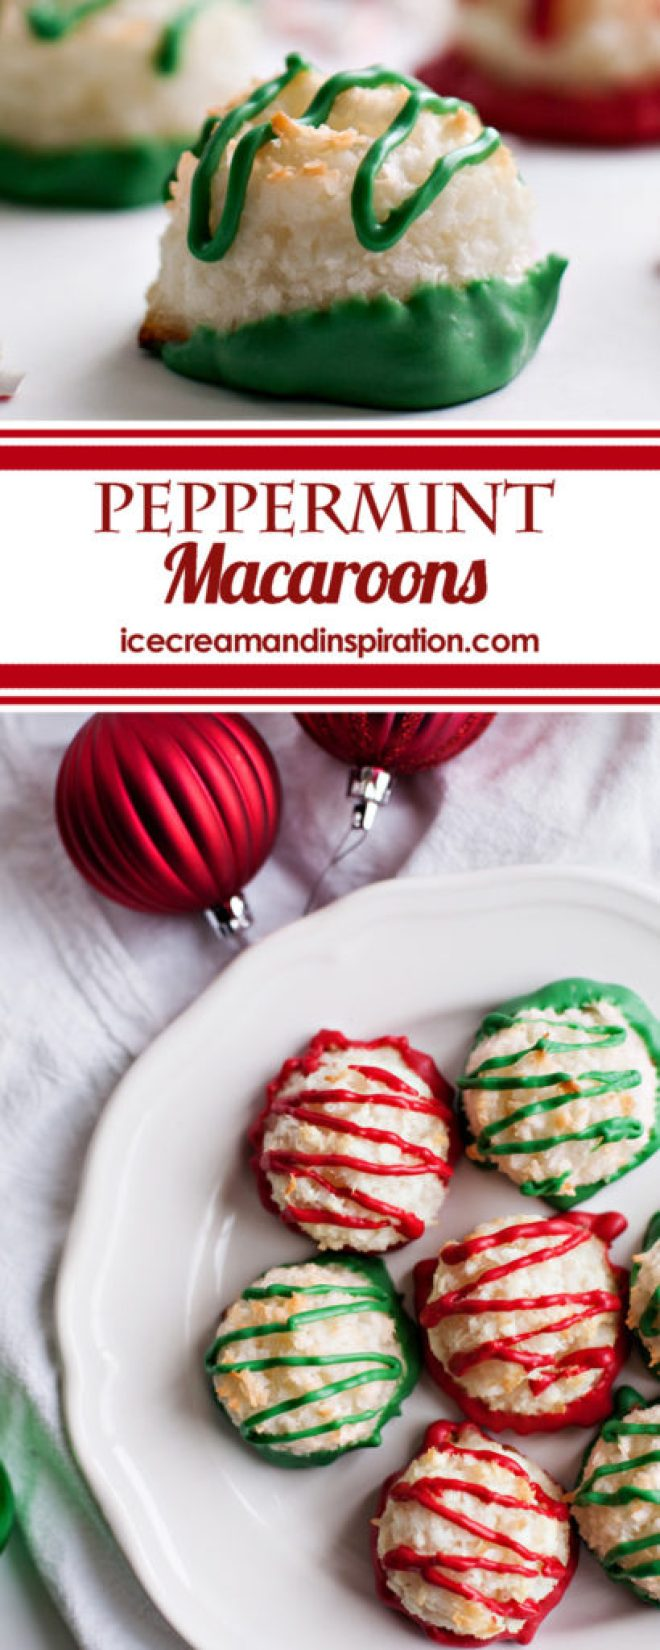 Make these super easy Peppermint Macaroons to take to your next Christmas party or cookie exchange! Made with only six simple ingredients, you can whip these up in no time! Dip them in festive candy melts or chocolate for a truly special treat! (Are gluten-free and dairy-free--unless you dip them in chocolate!)